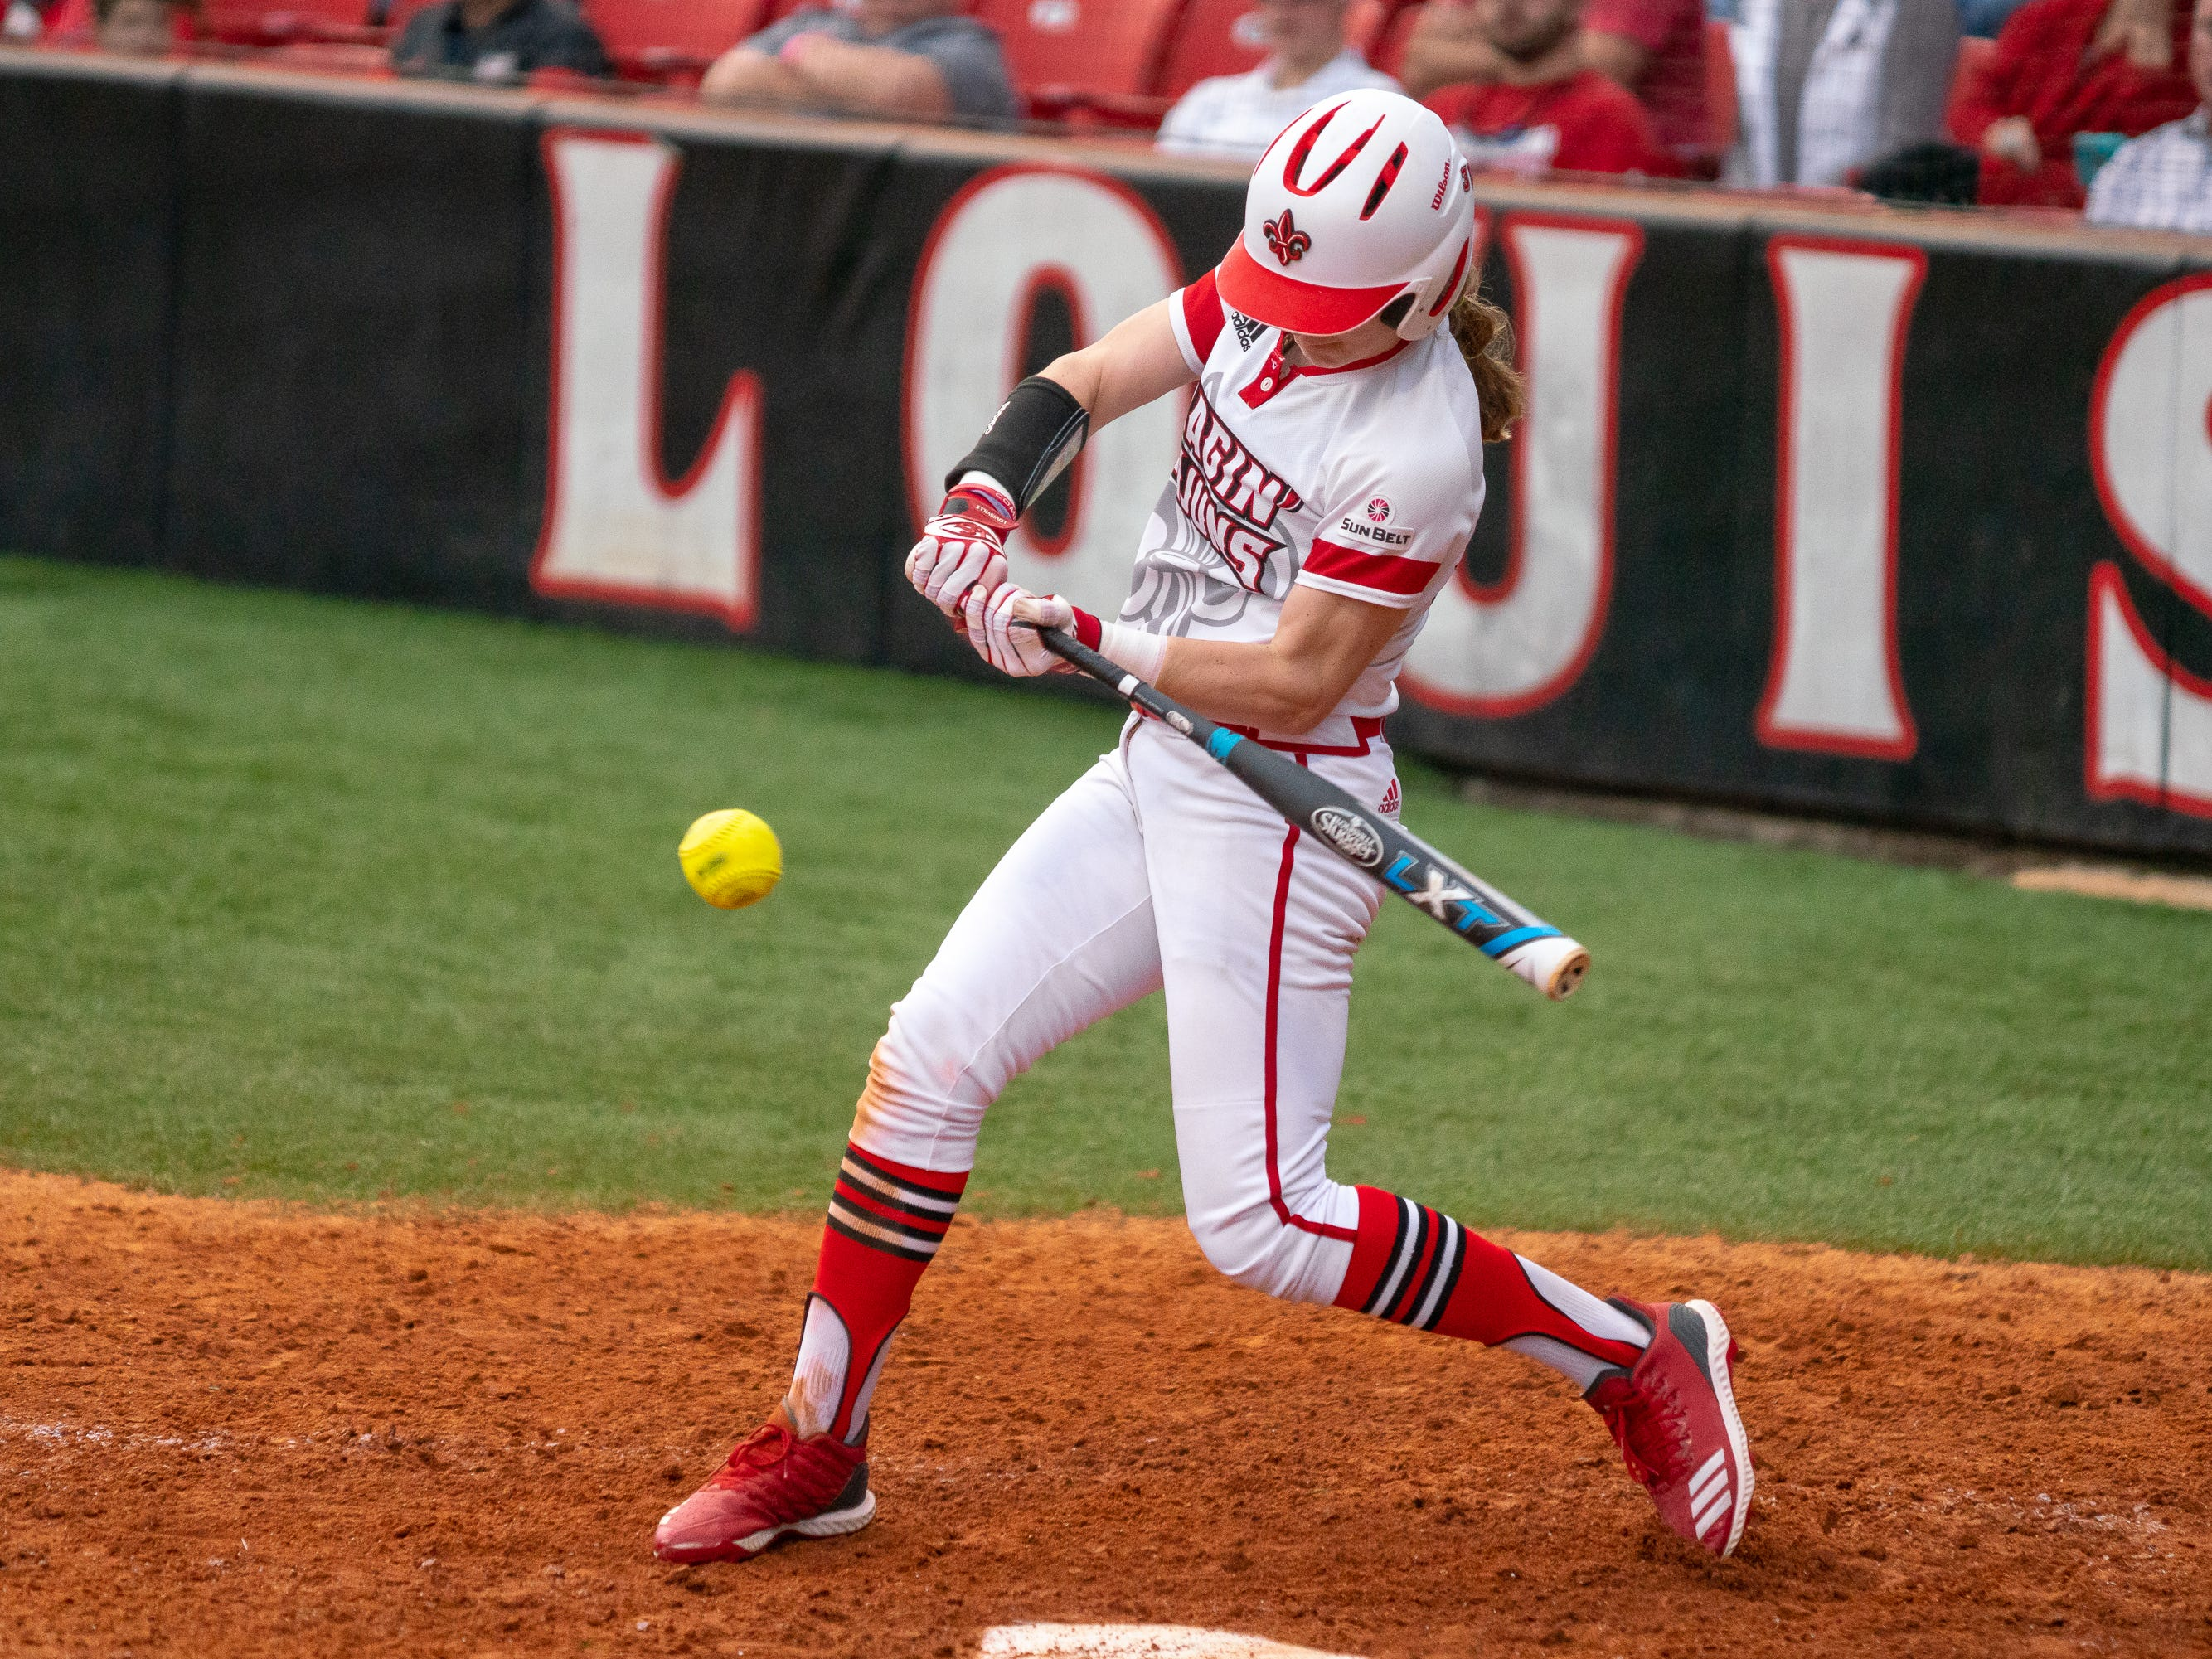 UL's Sarah Hudek takes a swing at the pitch as the Ragin' Cajuns play against the California Golden Bears at Lamson Park on February 11, 2019.